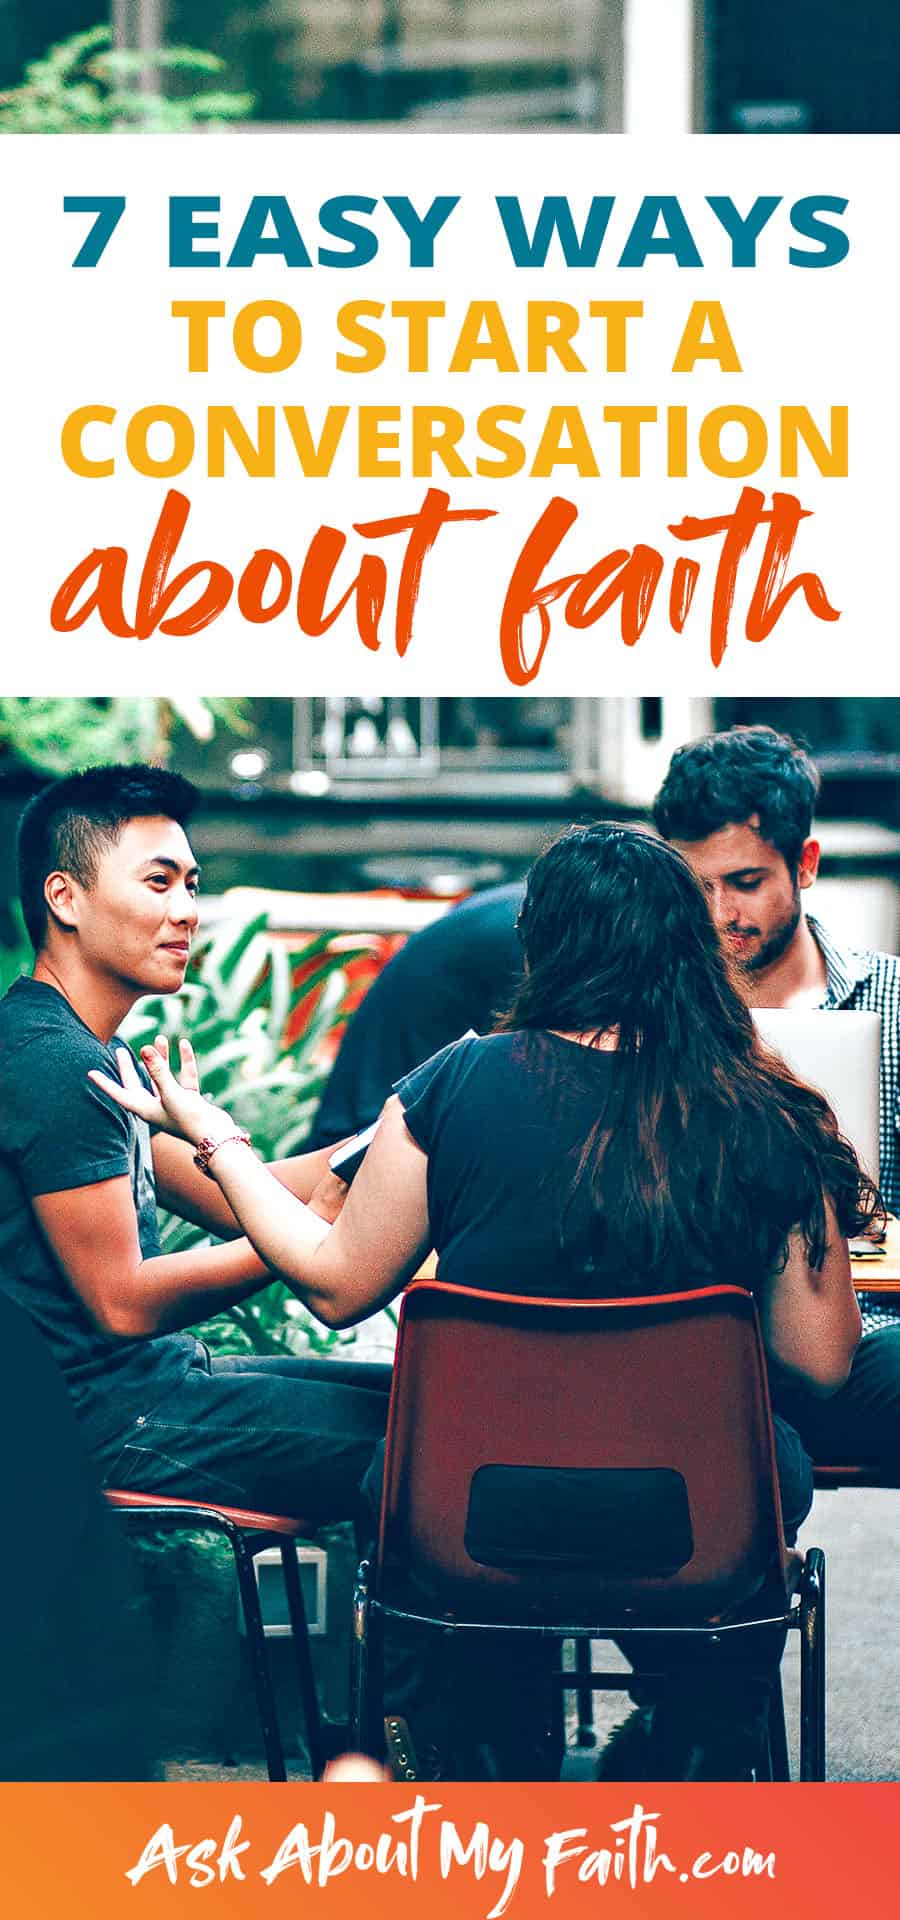 7 Simple Questions to Help You Share Your Faith | Evangelism Resources | Tips to Share the Gospel | How to Have a Faith Conversation | Christian Faith